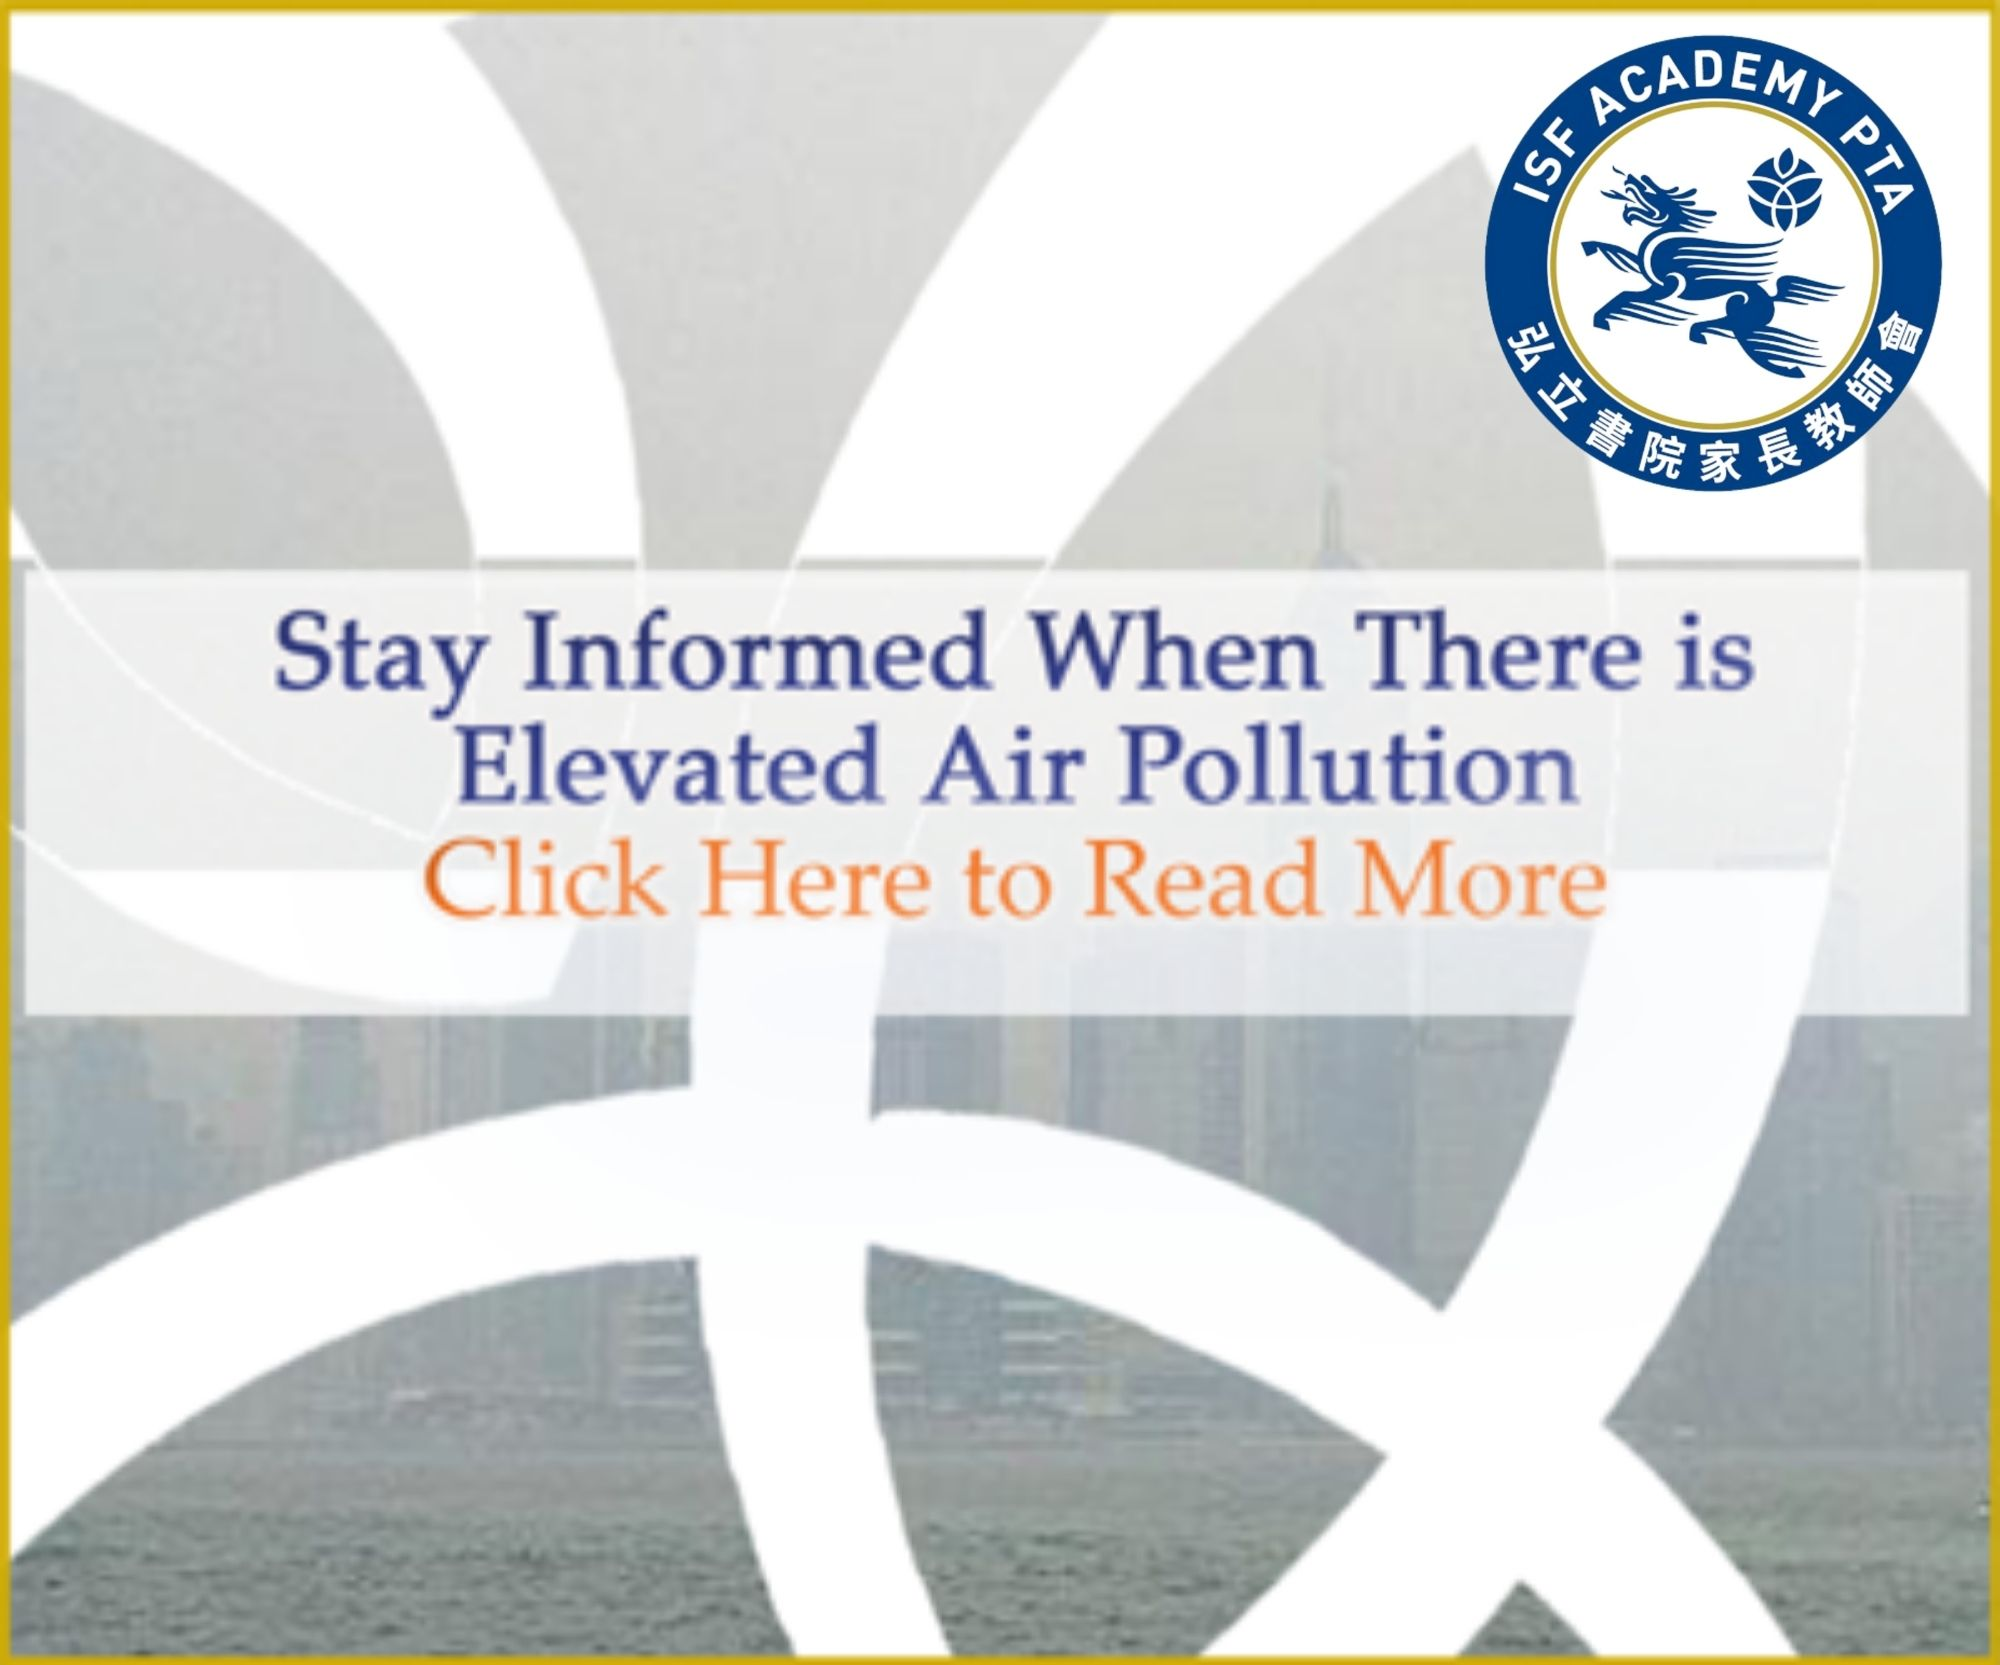 Stay Informed When There is Elevated Air Pollution